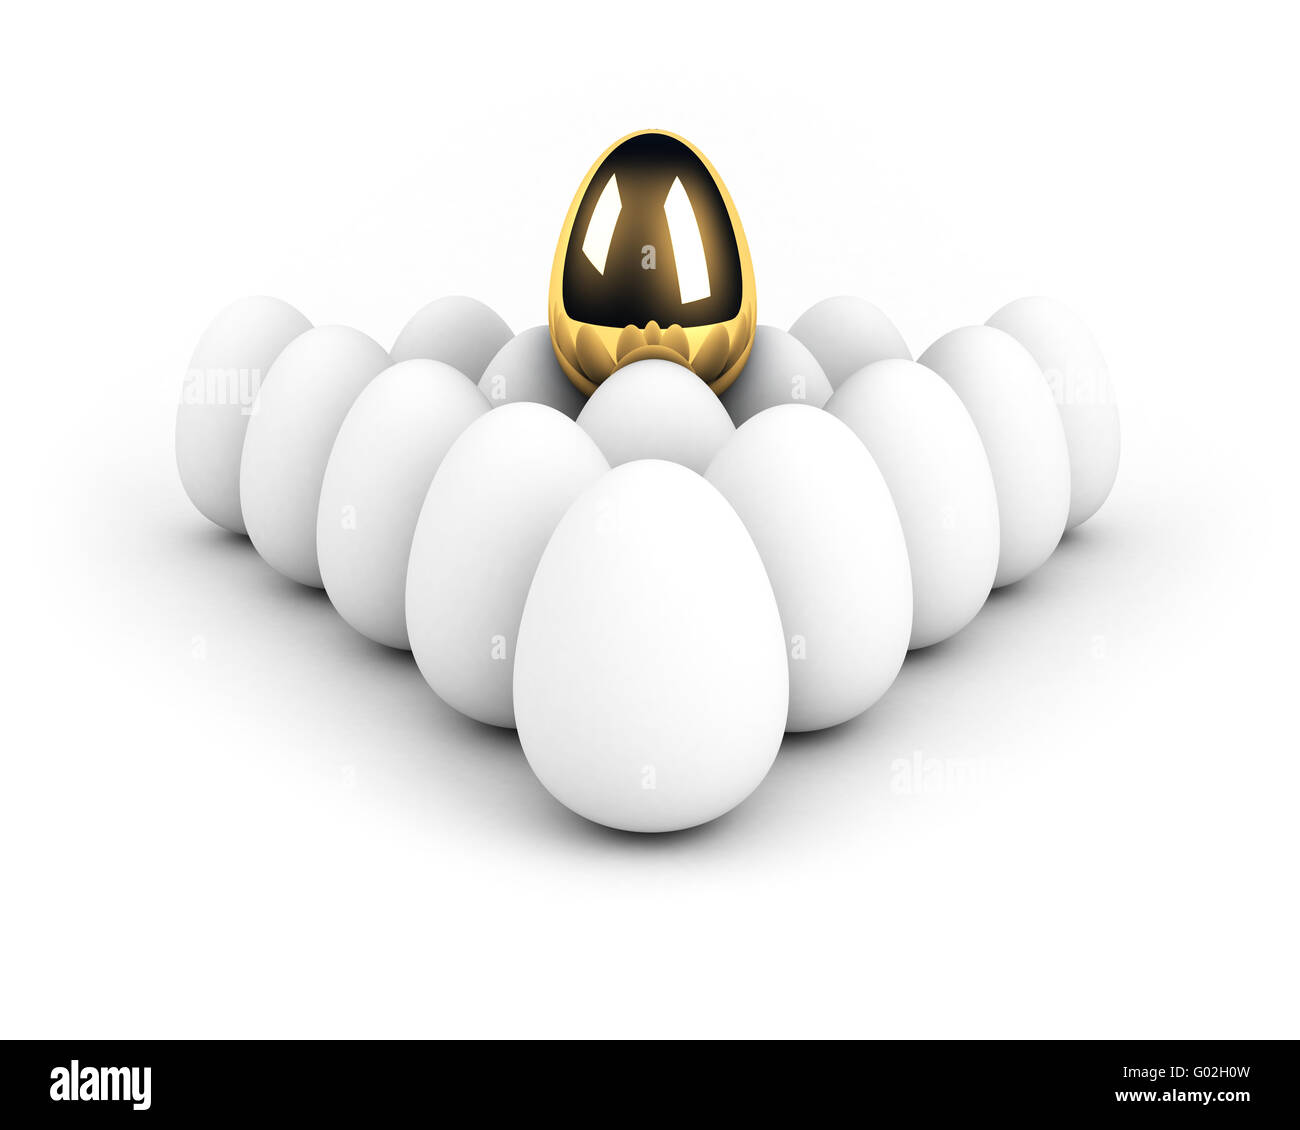 unique egg above the crowd leadership concept - Stock Image